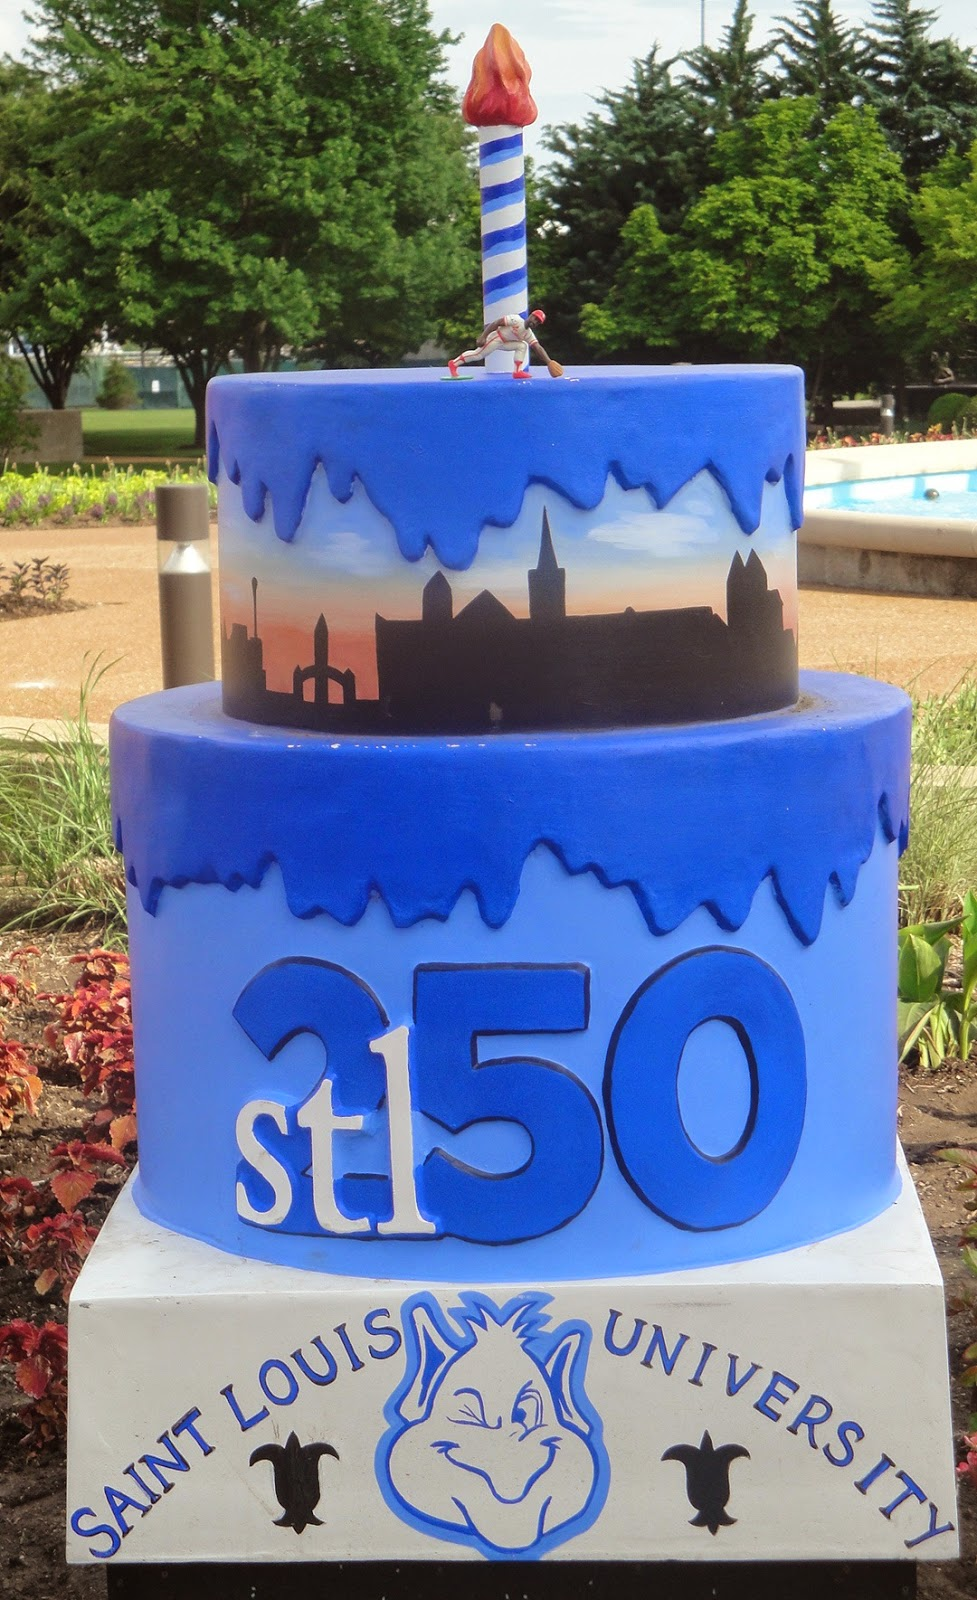 St Louis 250 Years 250 Cakes Here We Go 91 Saint Louis